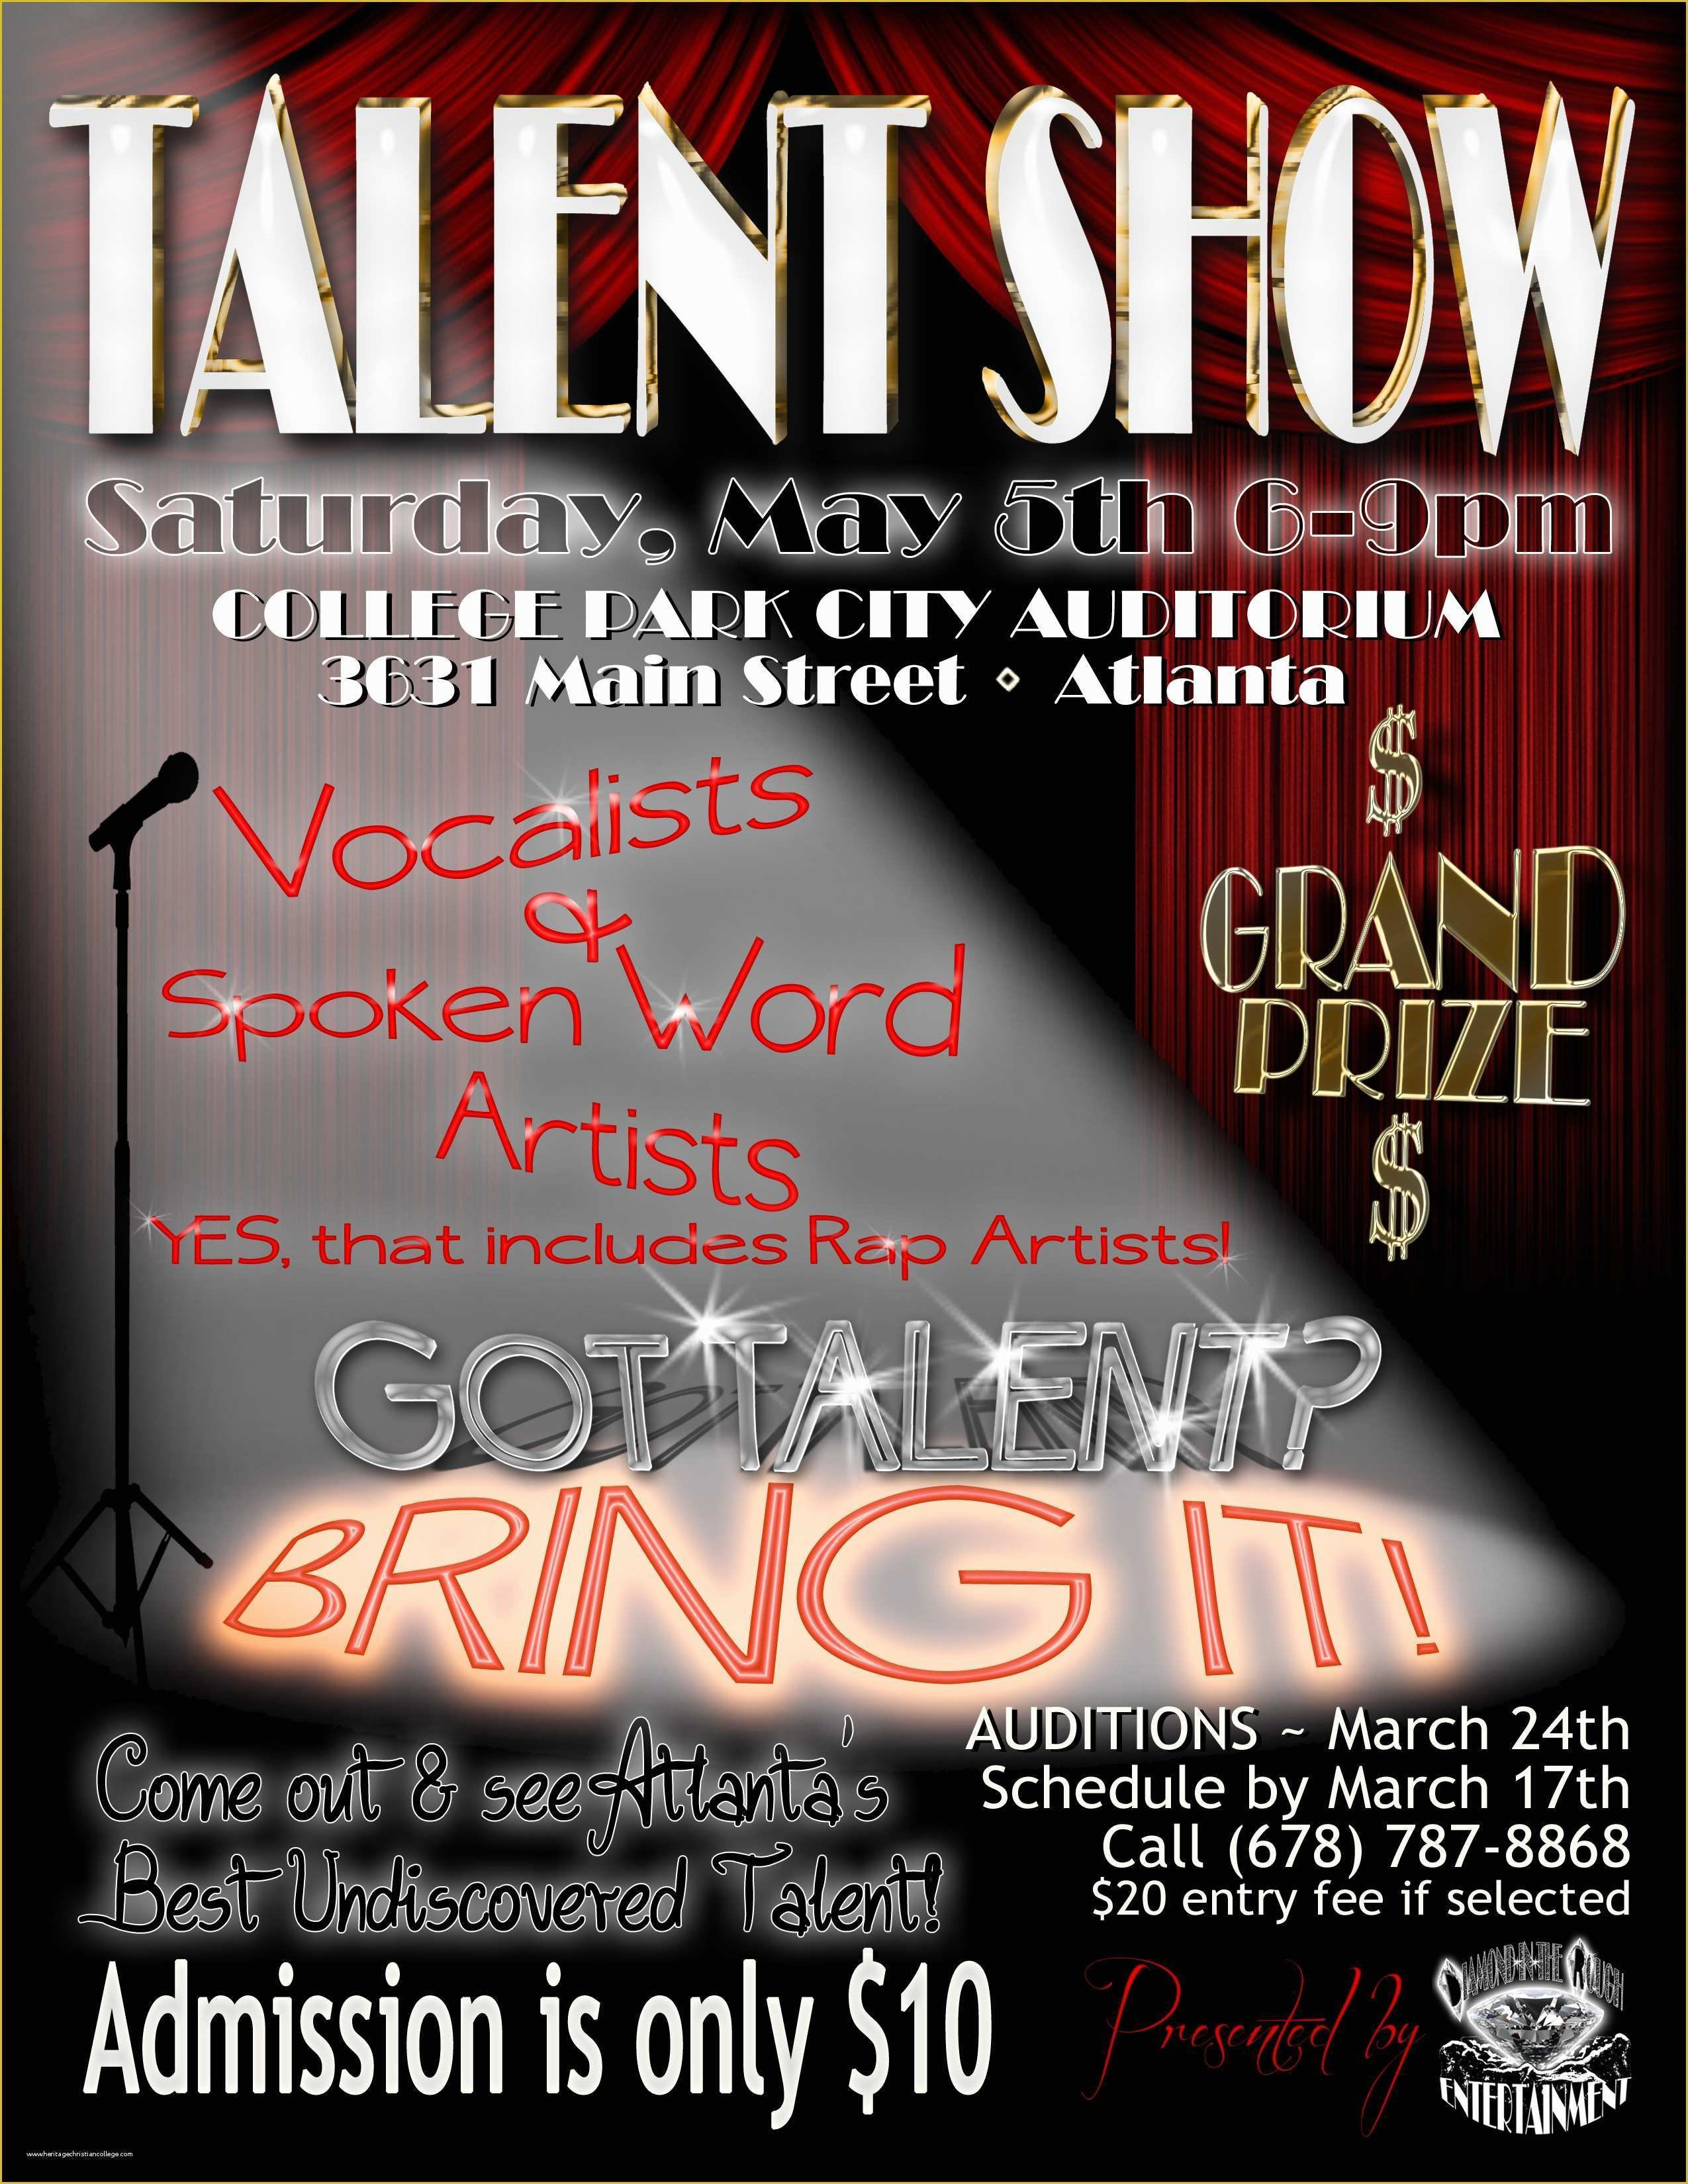 Talent Show Flyer Template Free Printable Talent Show Flyer Template 26 Talent